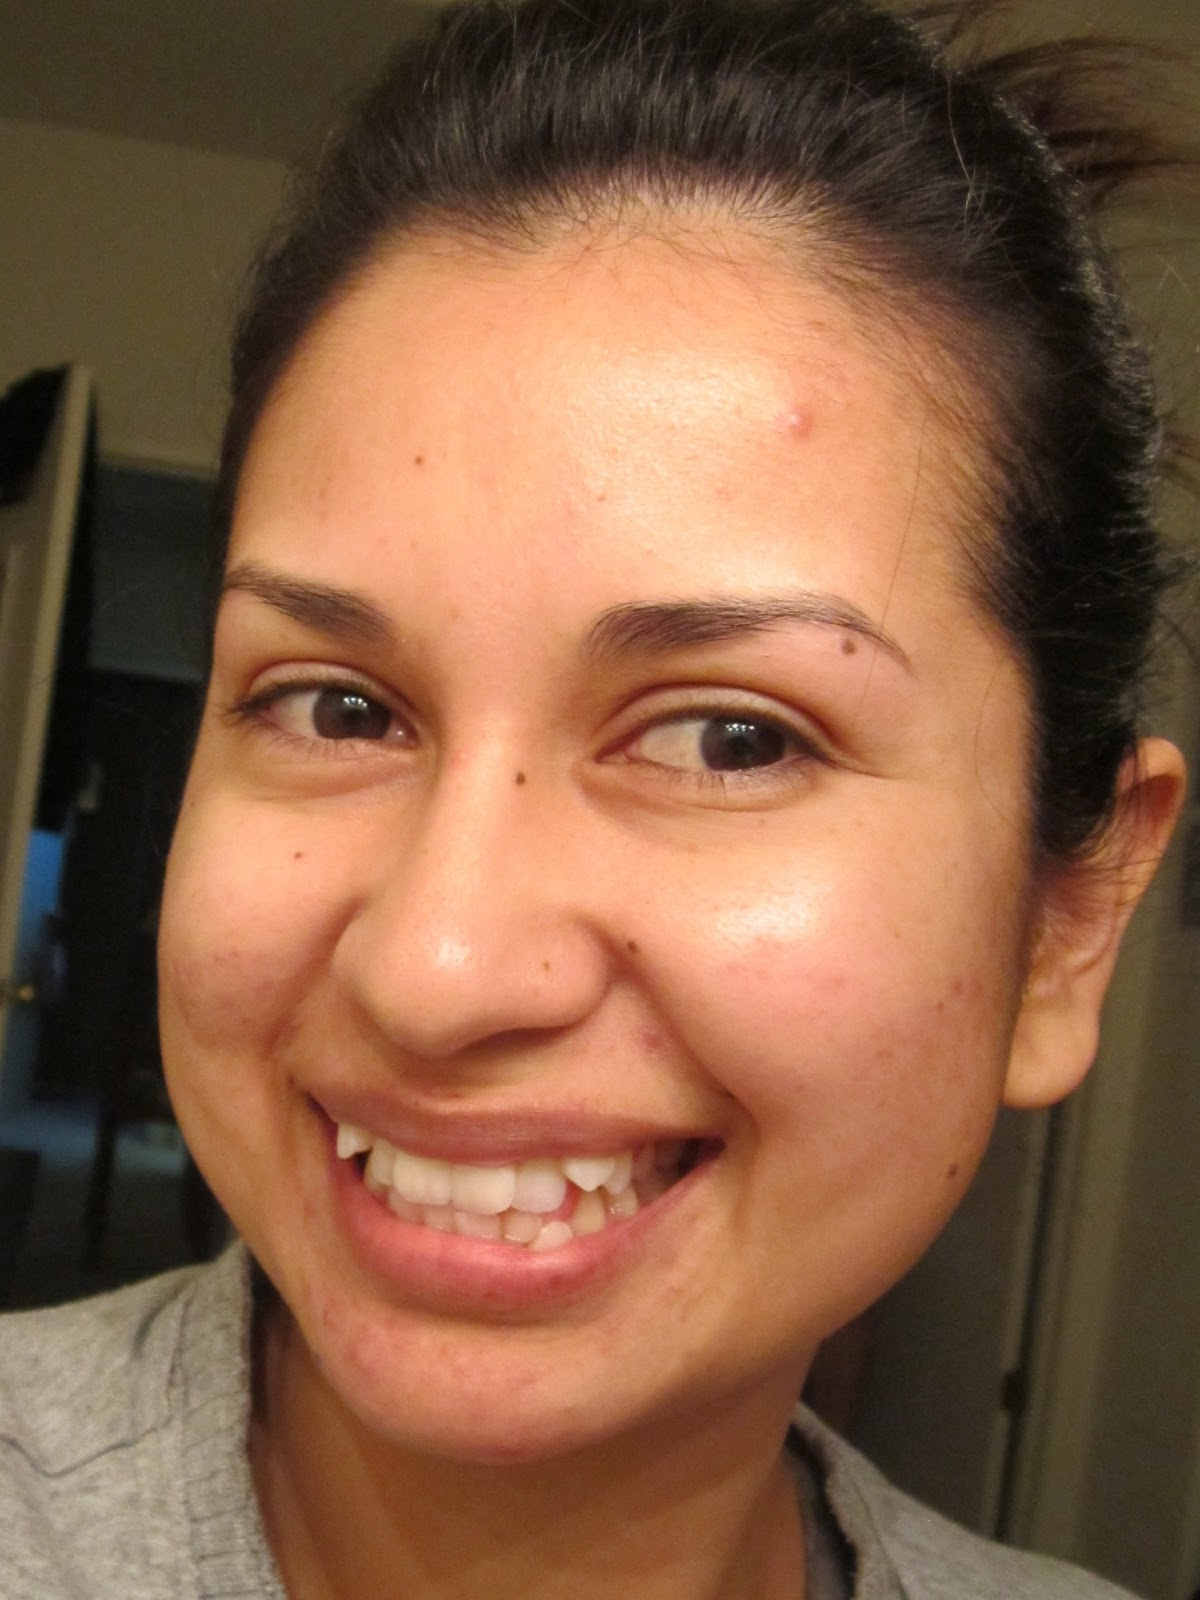 Blog about facial discoloration